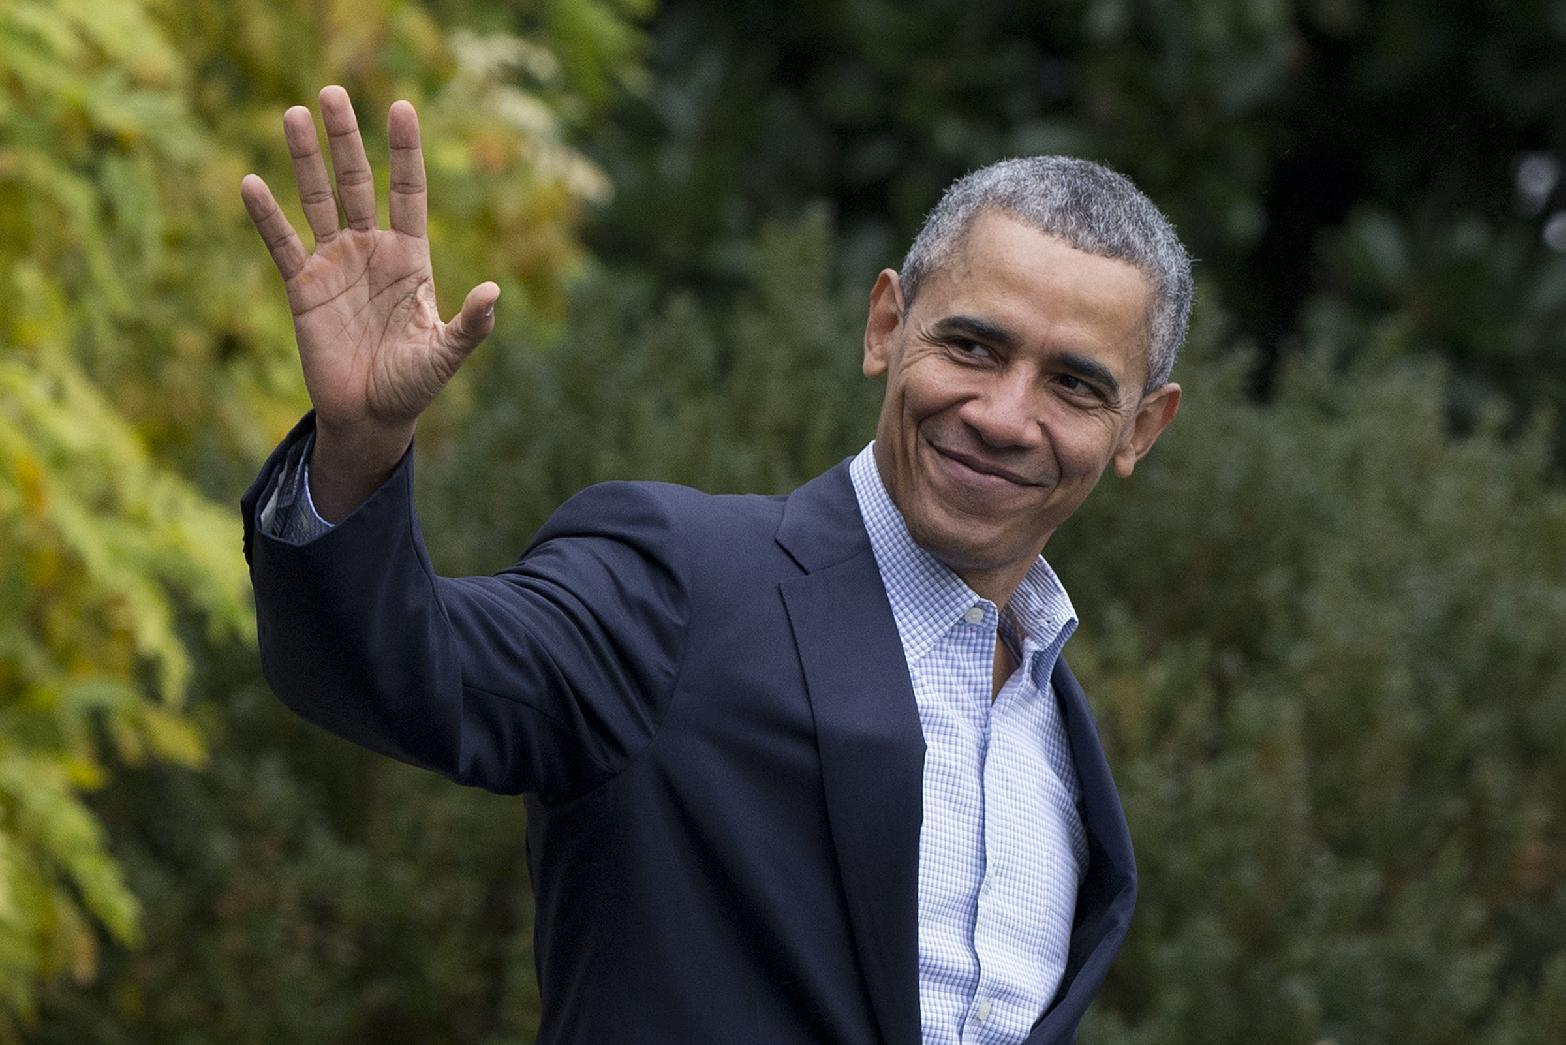 Obama prods world on climate change, faces pushback at home